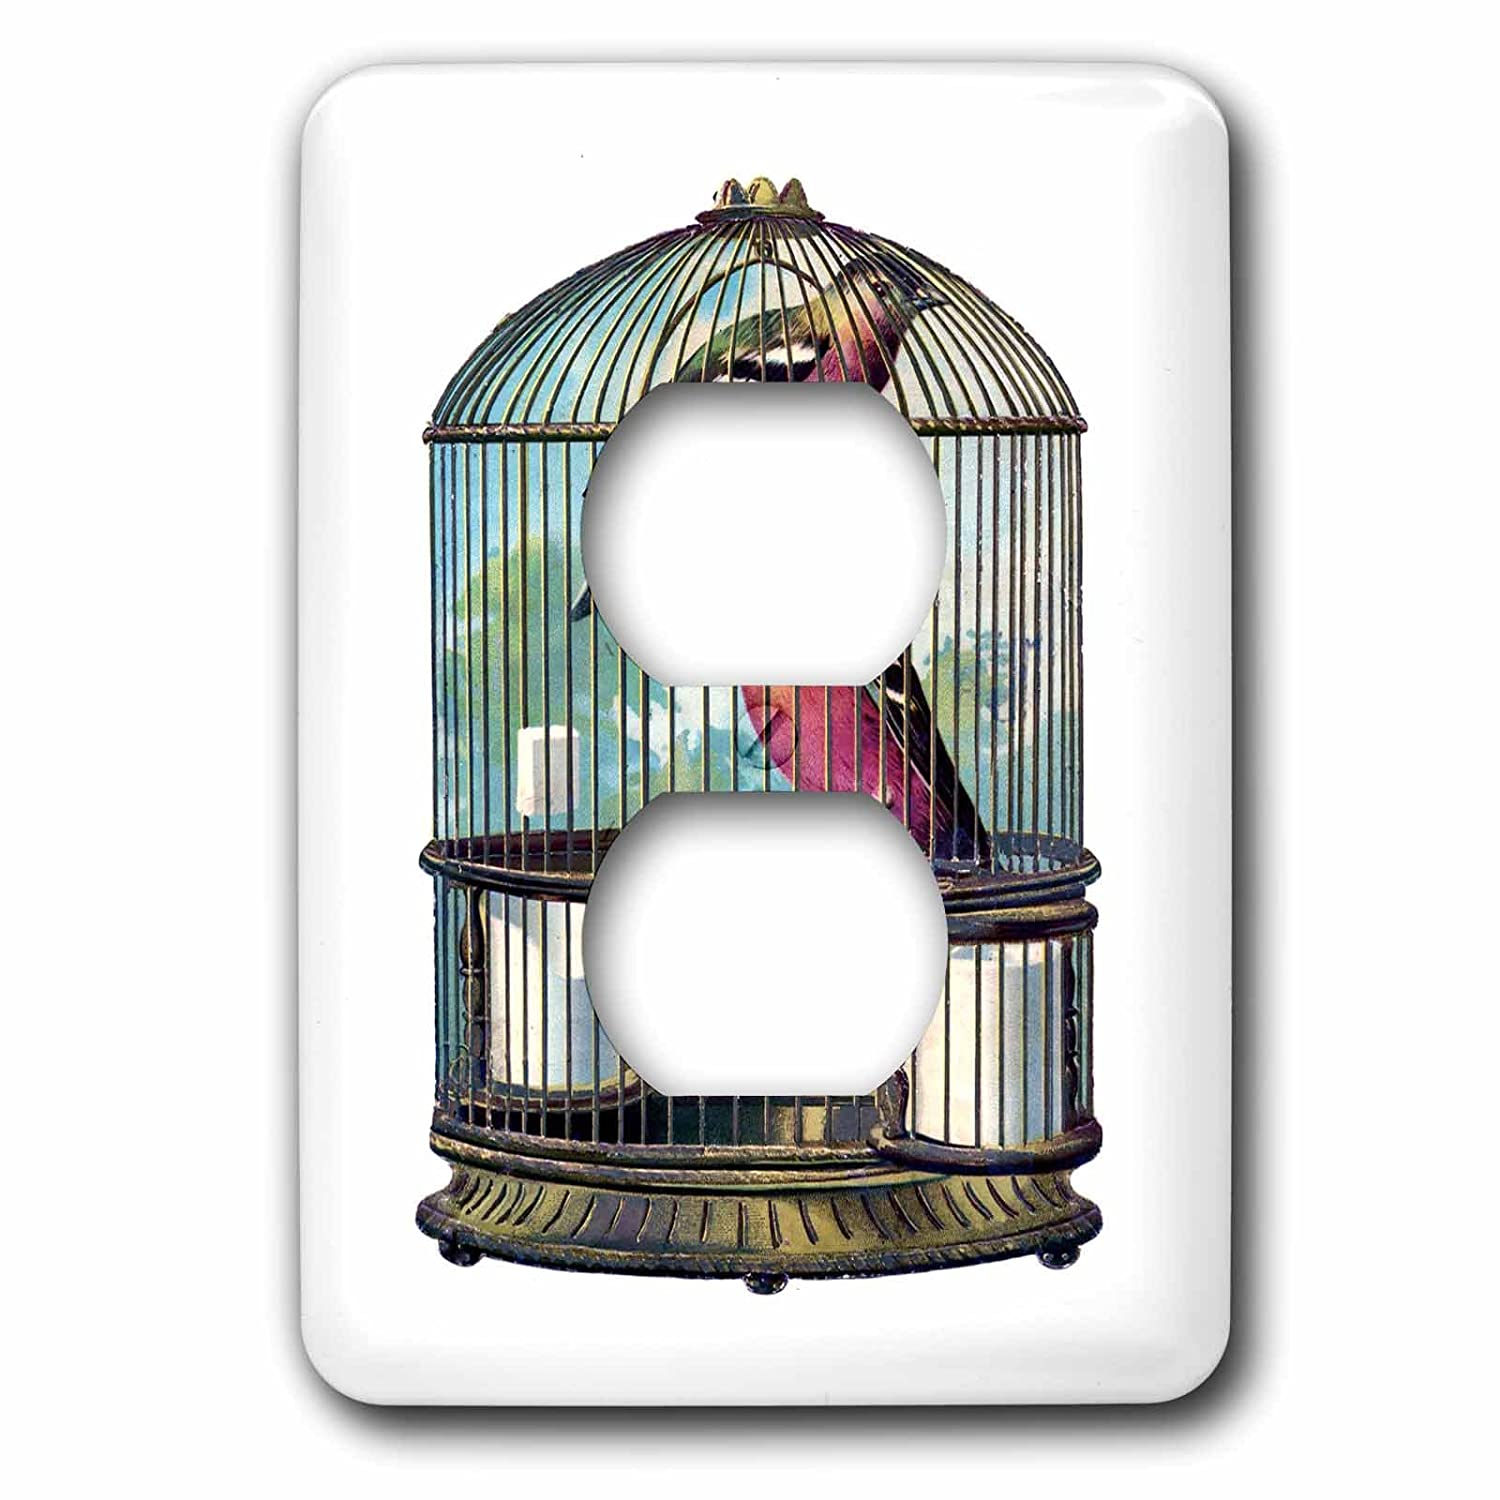 3dRose lsp/_61863/_6 Victorian Cage with 2 Colorful Birds Plug Outlet Cover